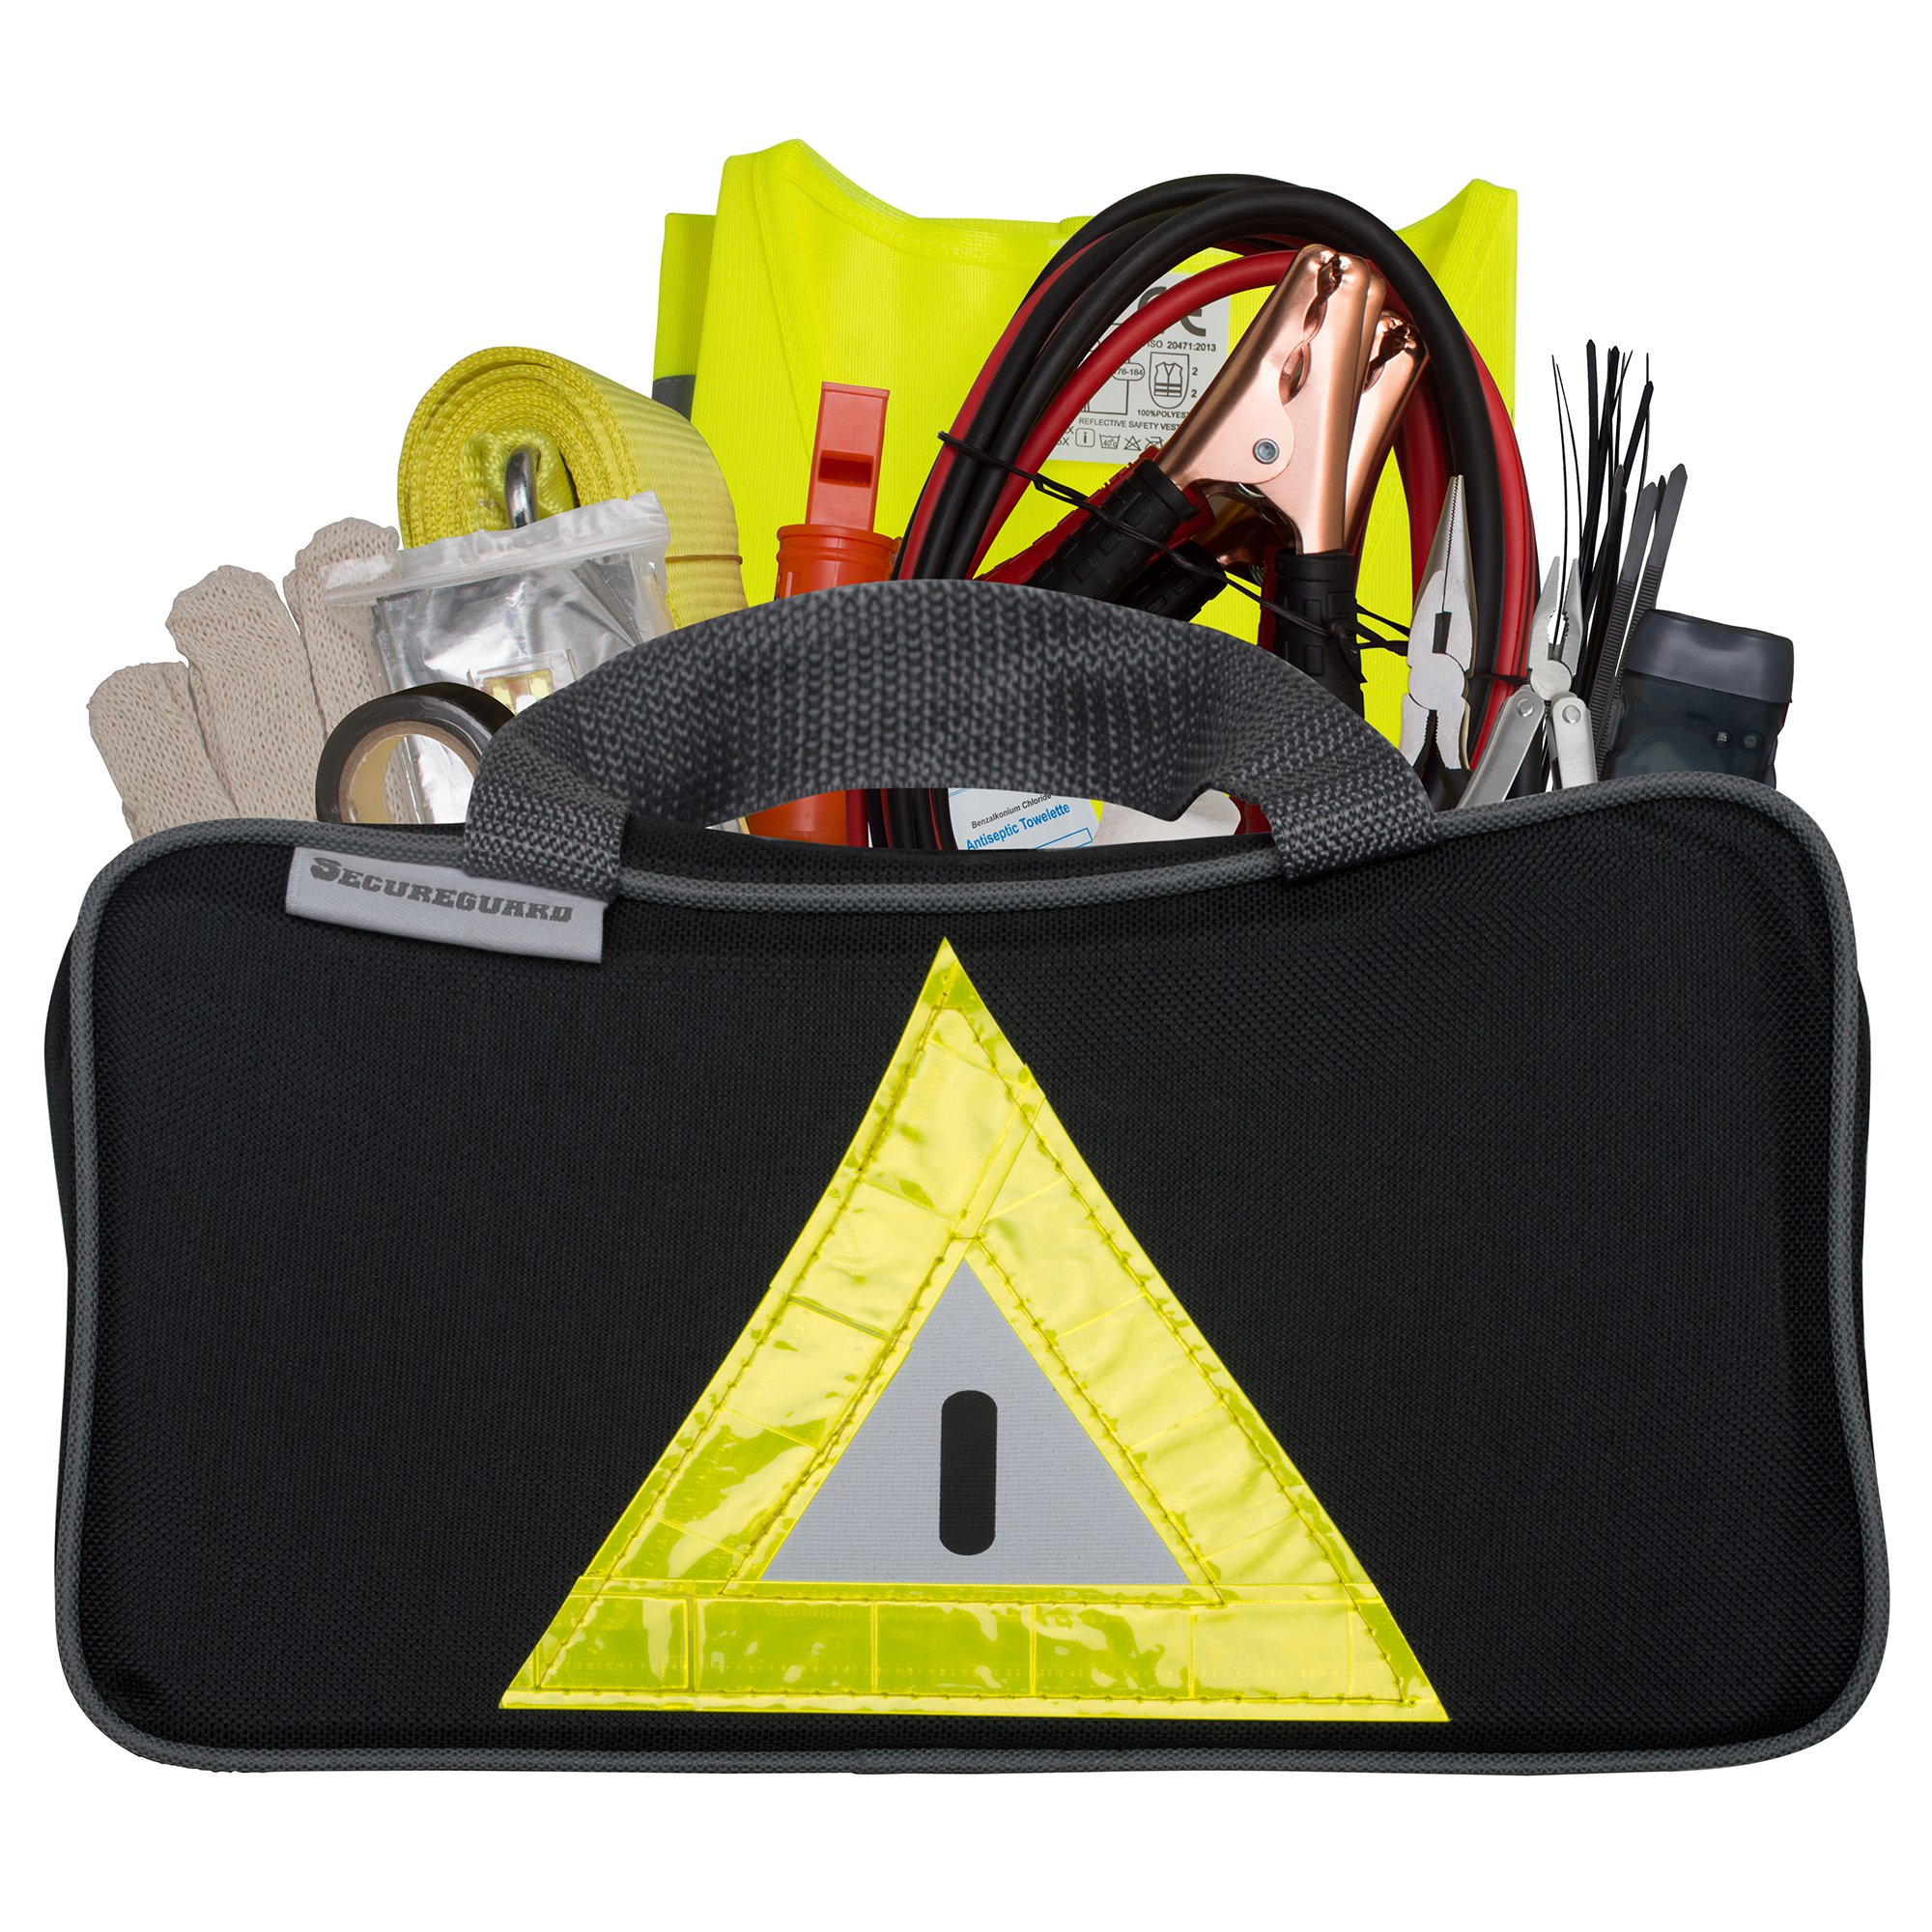 Secureguard Roadside Emergency Kit Includes - First Aid Kit, Jumper Cables, Tow Rope, and Many Other Supplies - 106 Pieces for Assistance with Most Roadside Emergencies